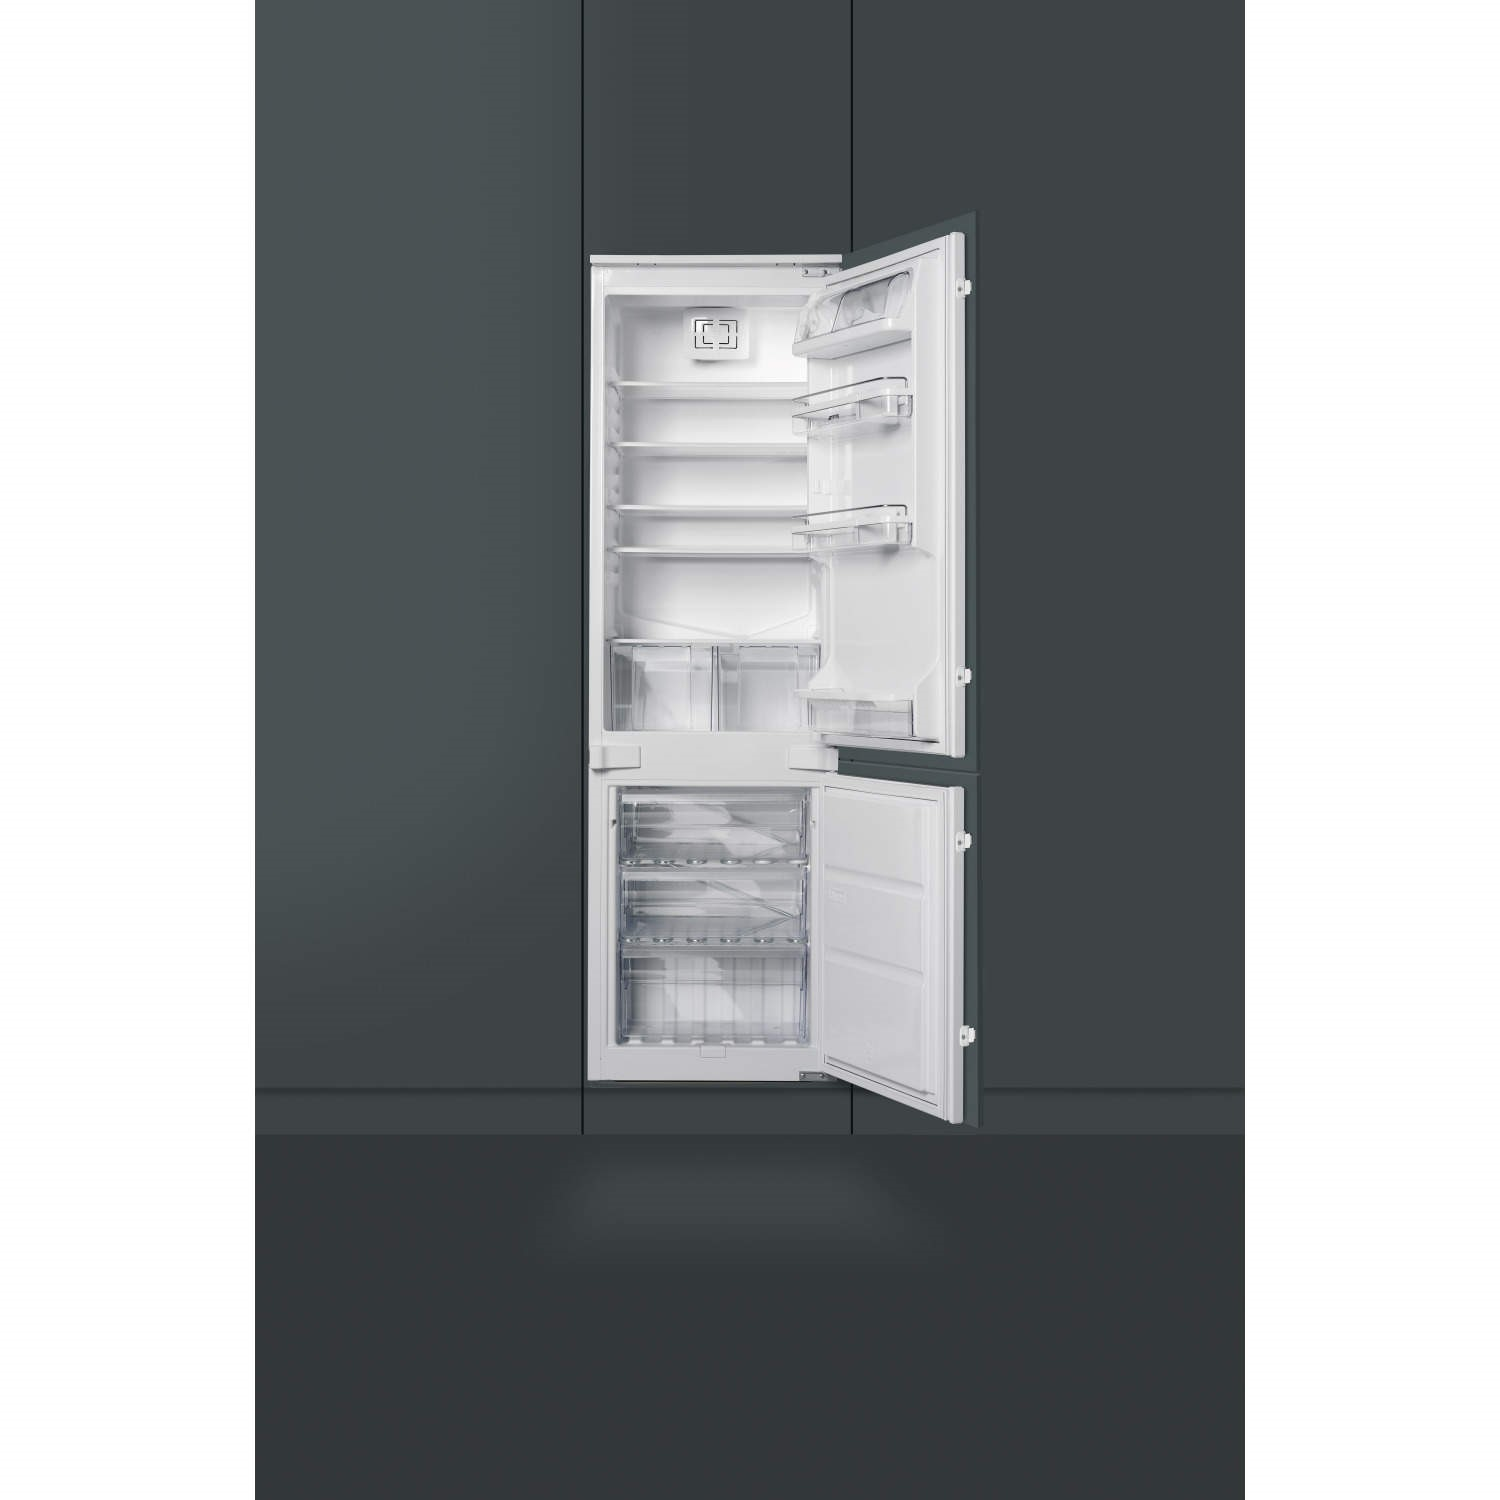 smeg ukc7280fp 54cm wide integrated upright incolumn fridge freezer white